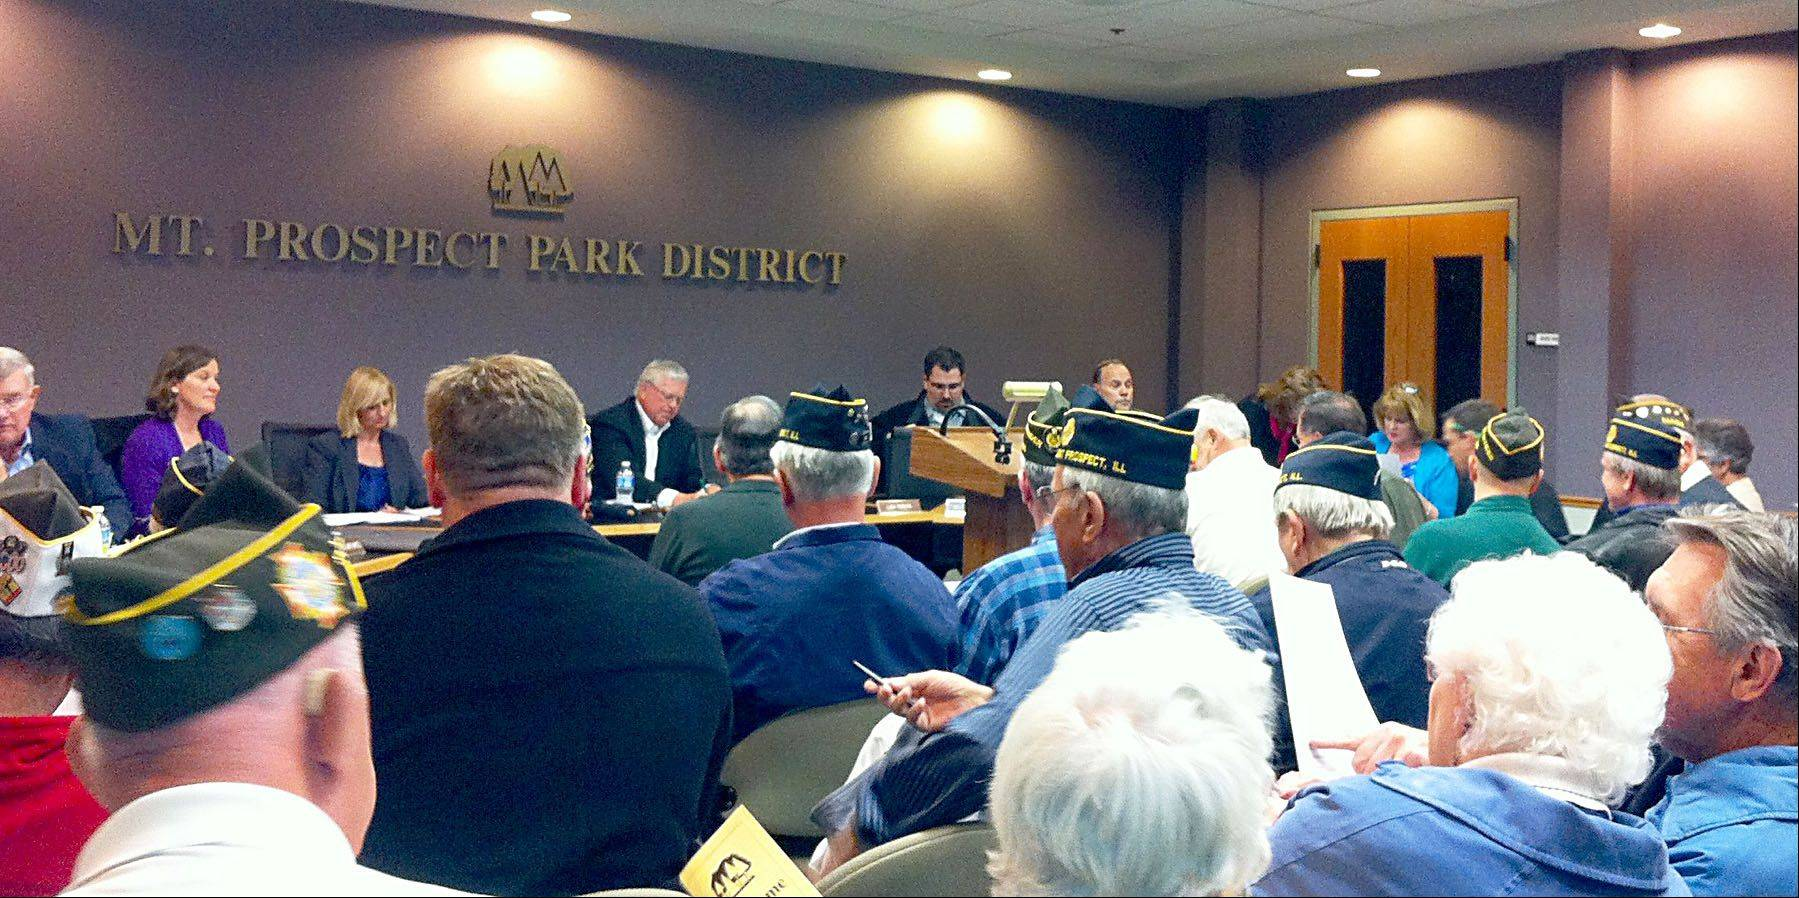 The Mt. Prospect Park District board meeting room was filled Wednesday for the vote on a permanent veterans memorial in town. Only those supporting the memorial spoke up at the meeting.